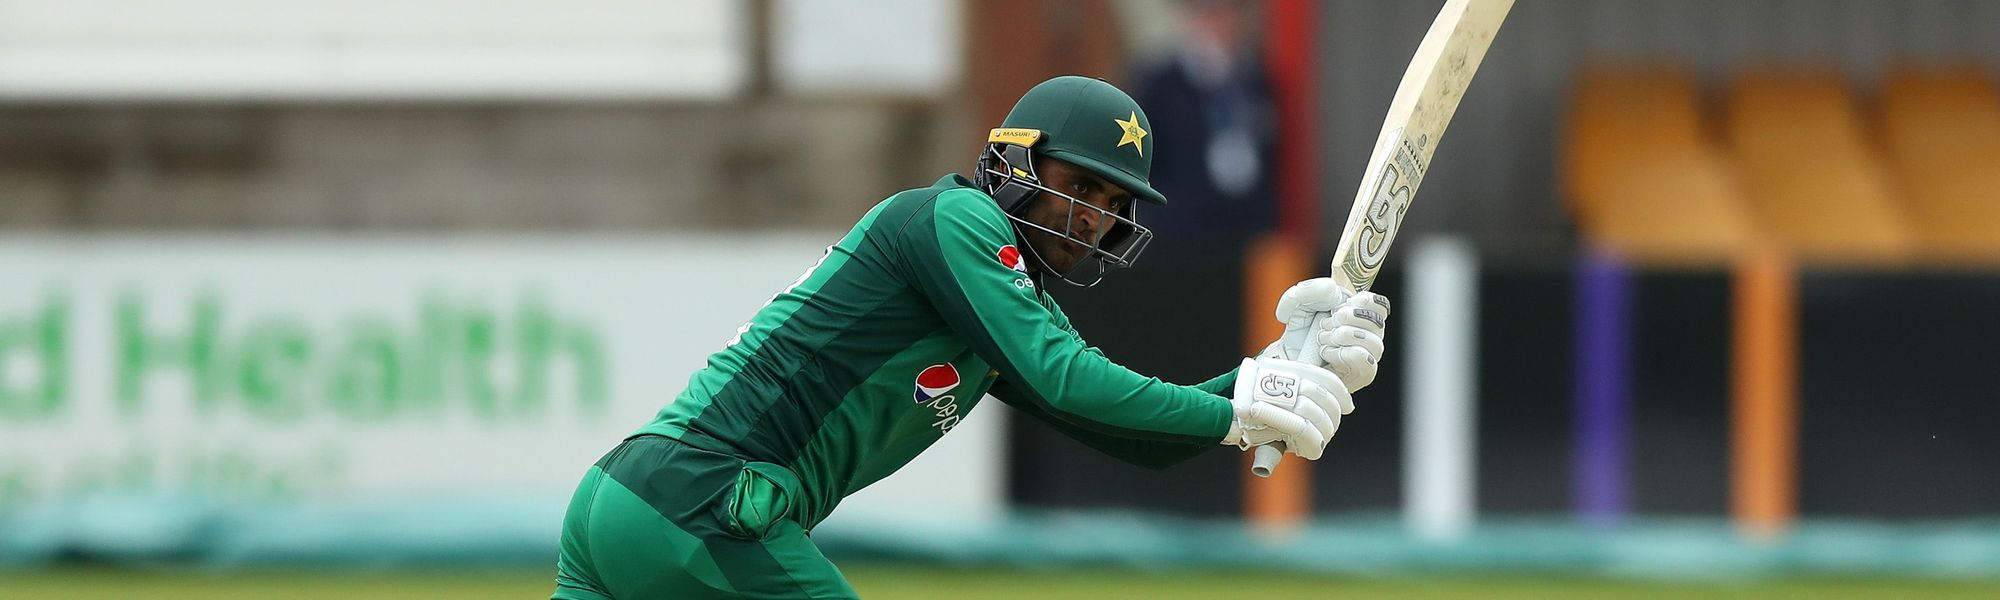 While it might be tough to slot him ahead of other batsmen in season-long contests, you can't ignore Fakhar Zaman in daily contests